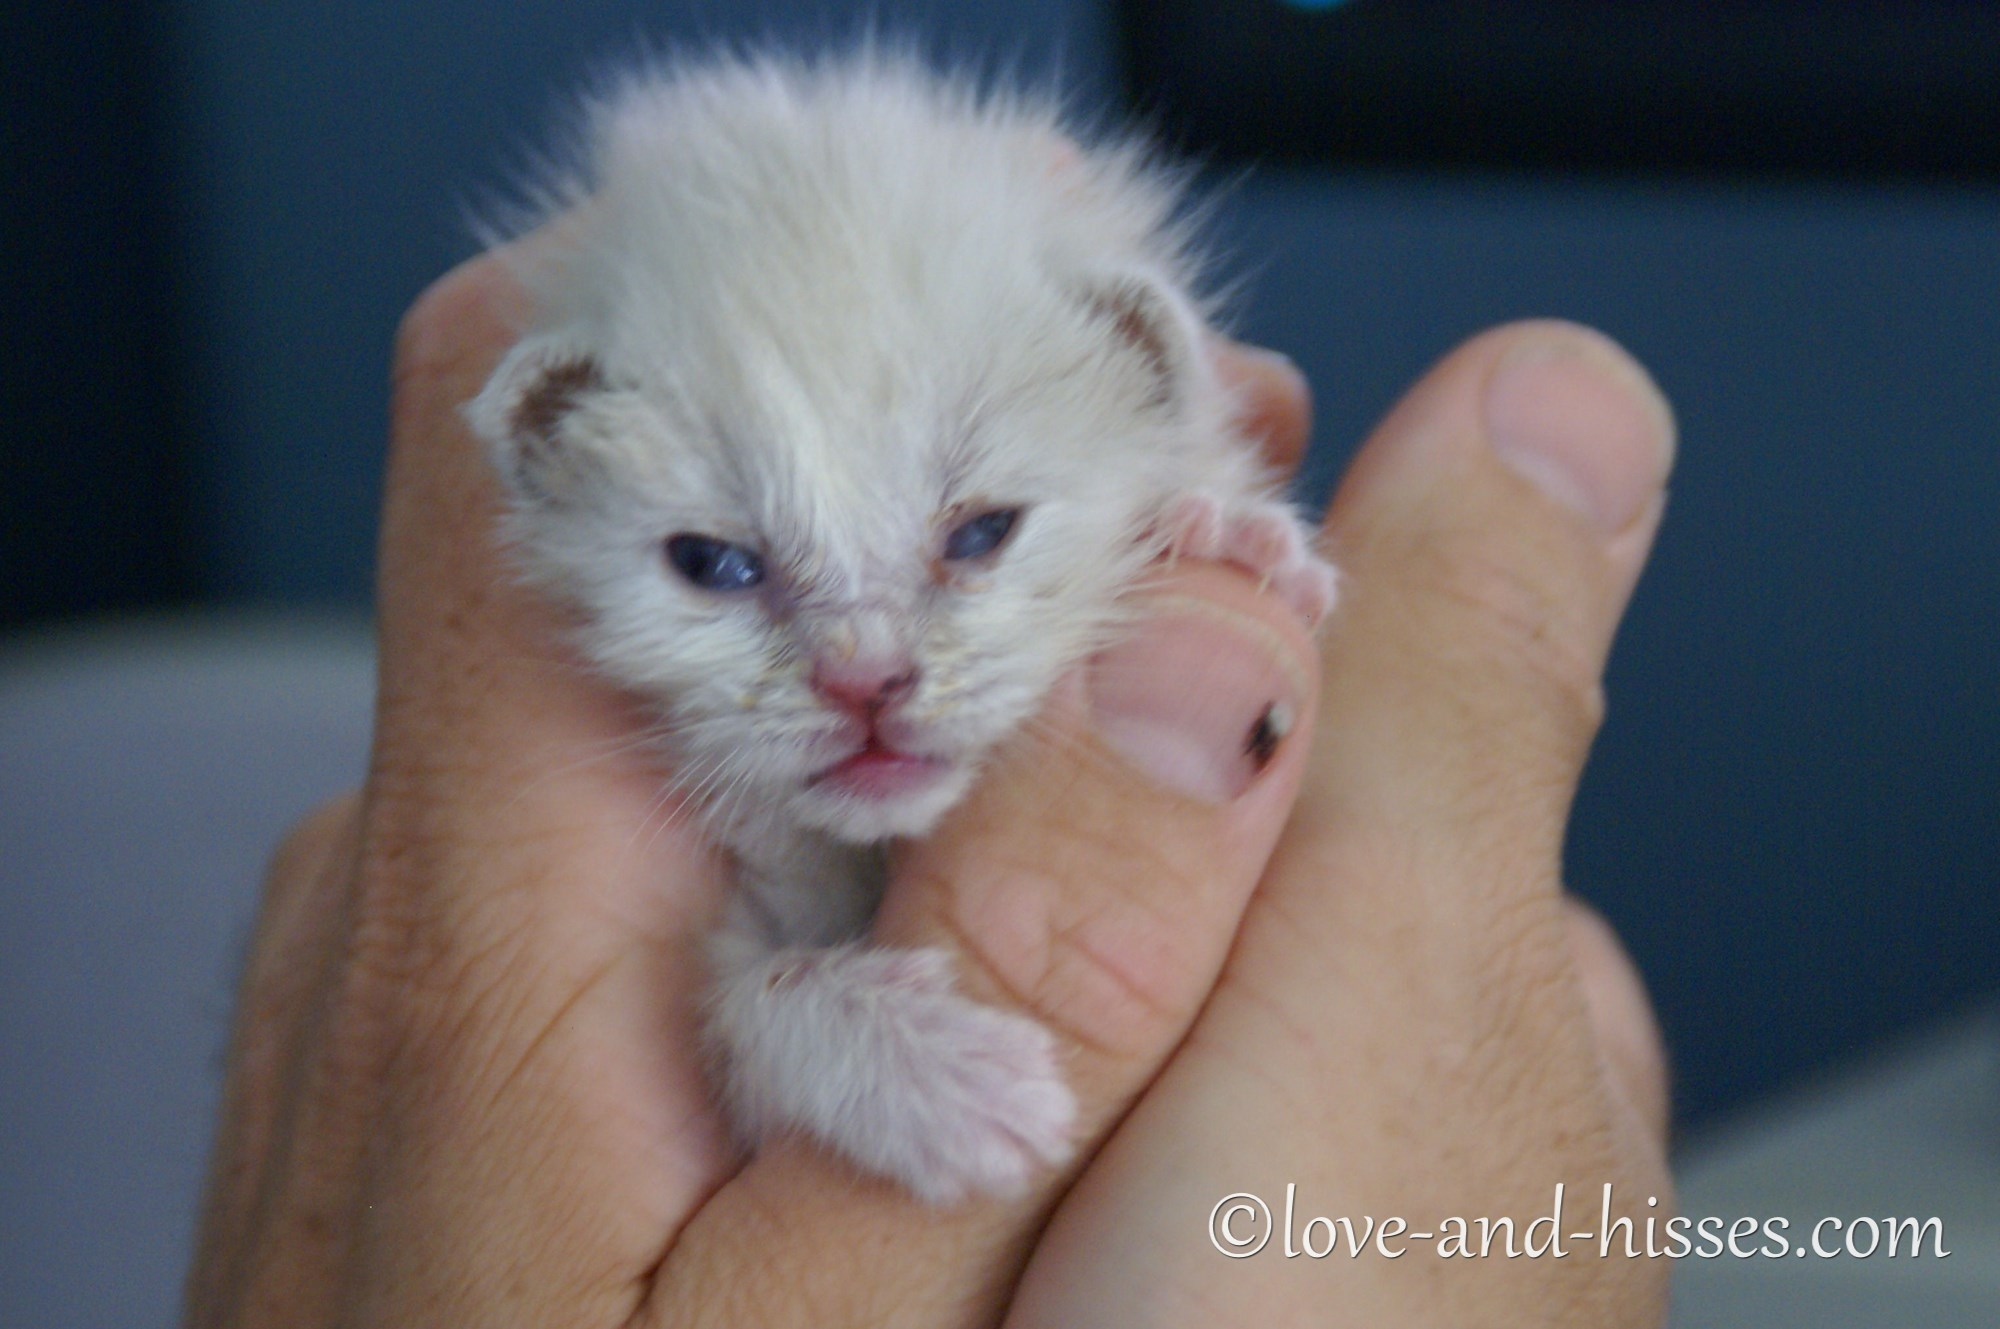 week old white kitten being held in two hands